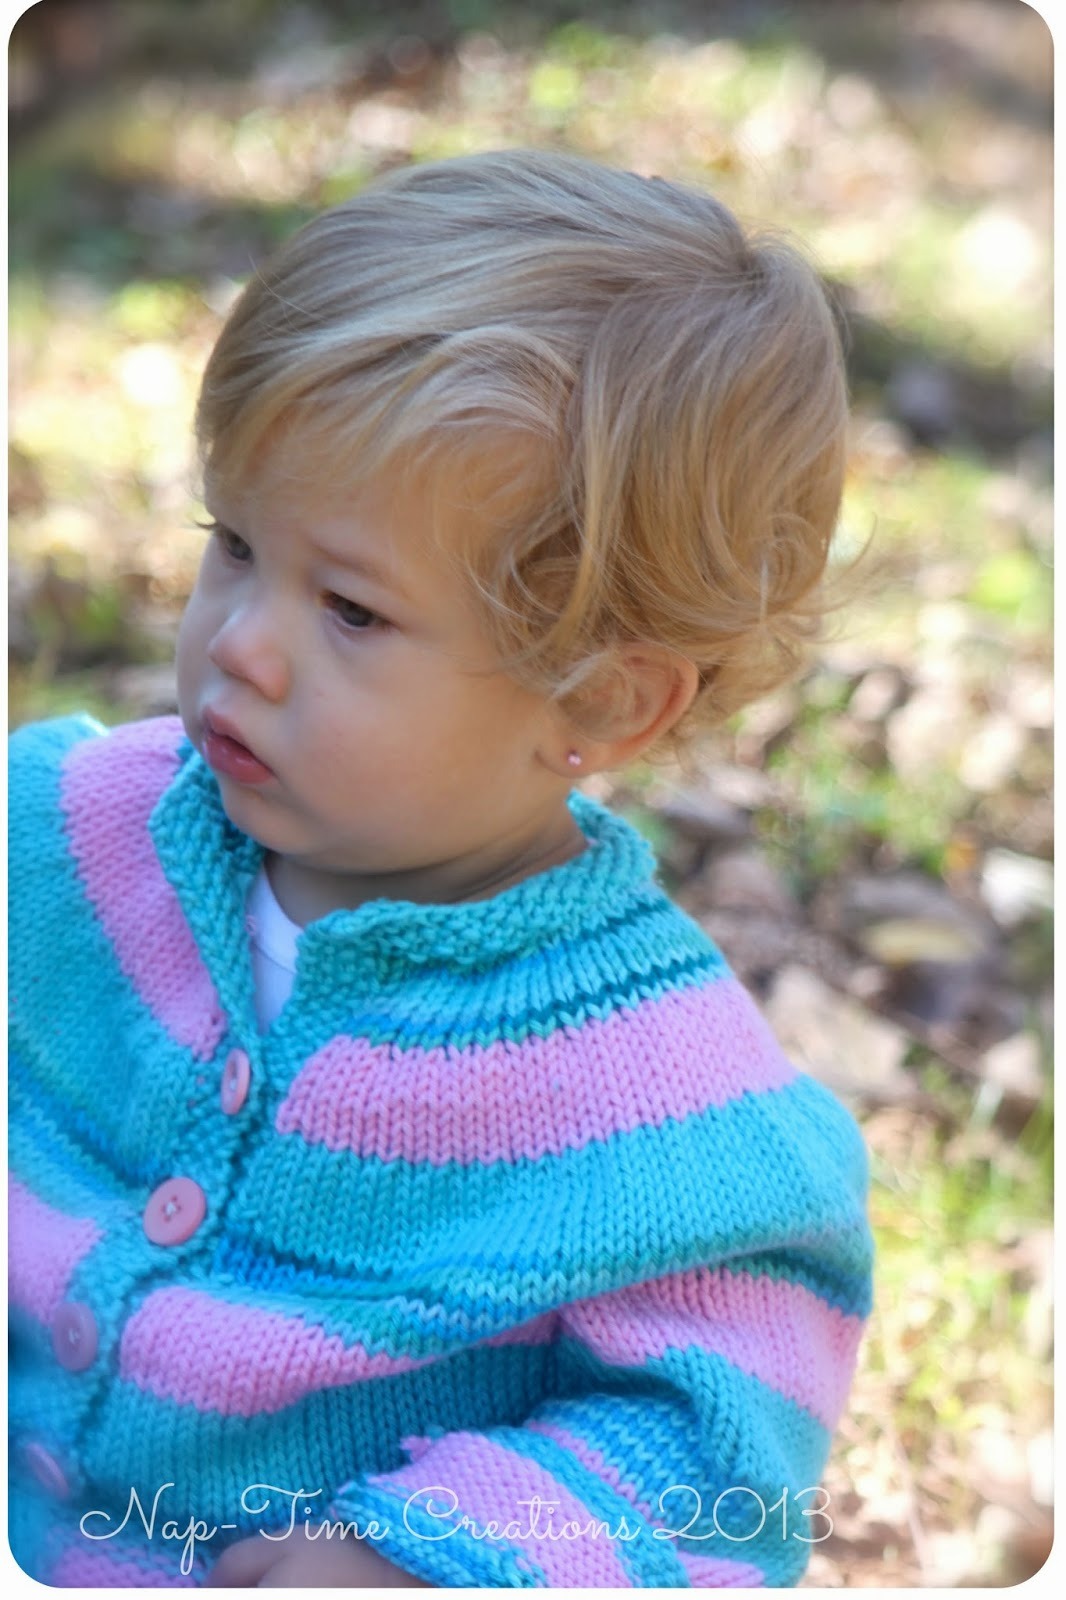 Knitted Childrens Sweaters Free Patterns Ba Sweaters Free Knitting Patterns Life Sew Savory